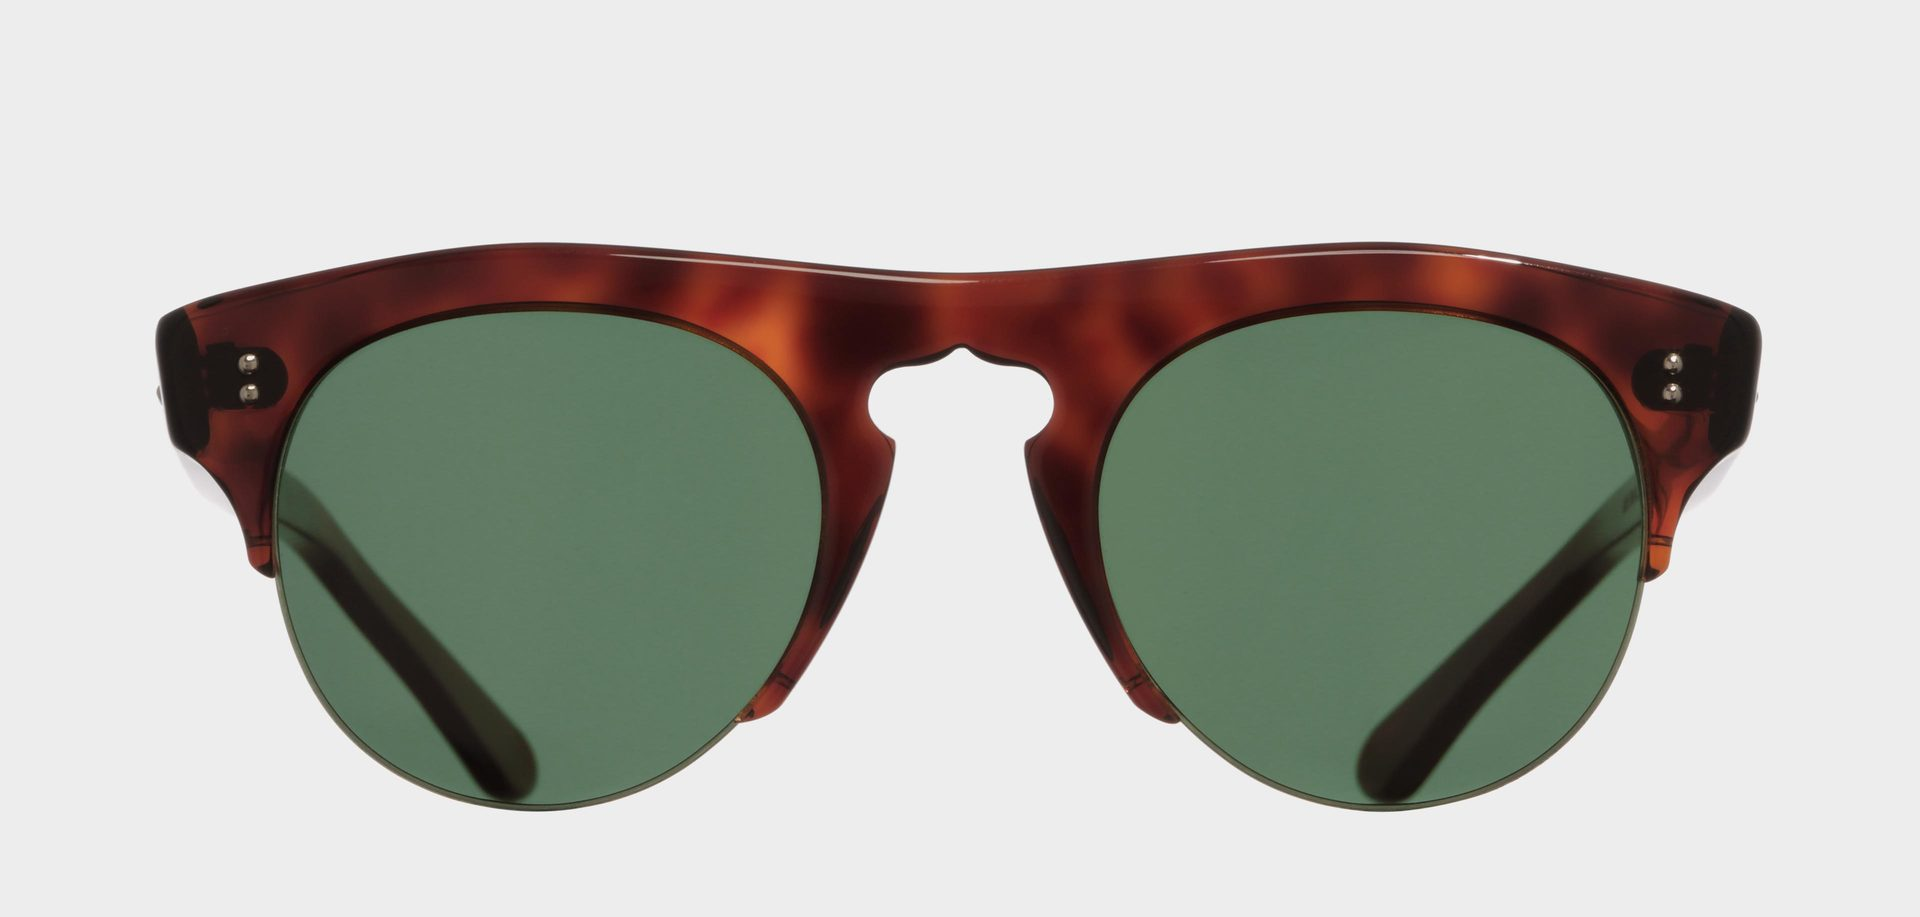 c3c435724a0 Summer Shade. The season s must-have eyewear.